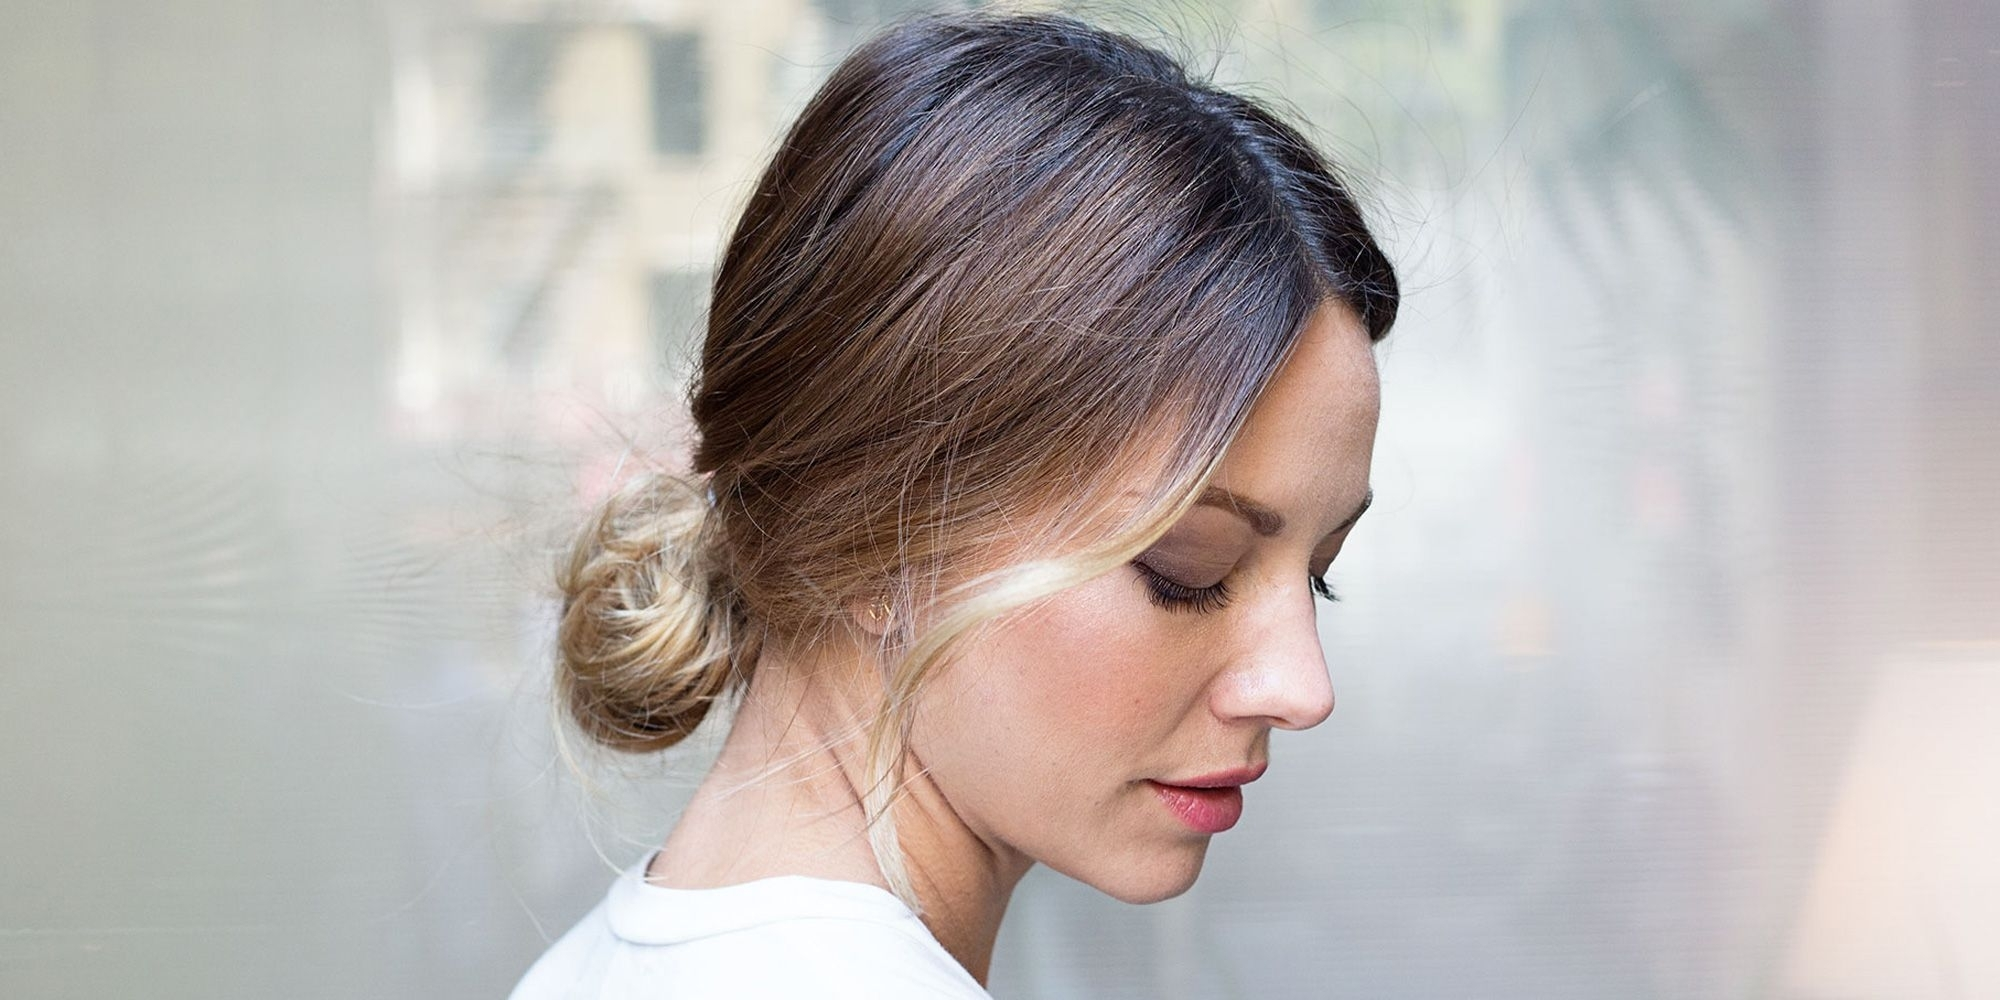 11 Ways To Make Your Bun Look Less Basic With Regard To 2017 Side Pony Hairstyles With Fishbraids And Long Bangs (View 1 of 20)